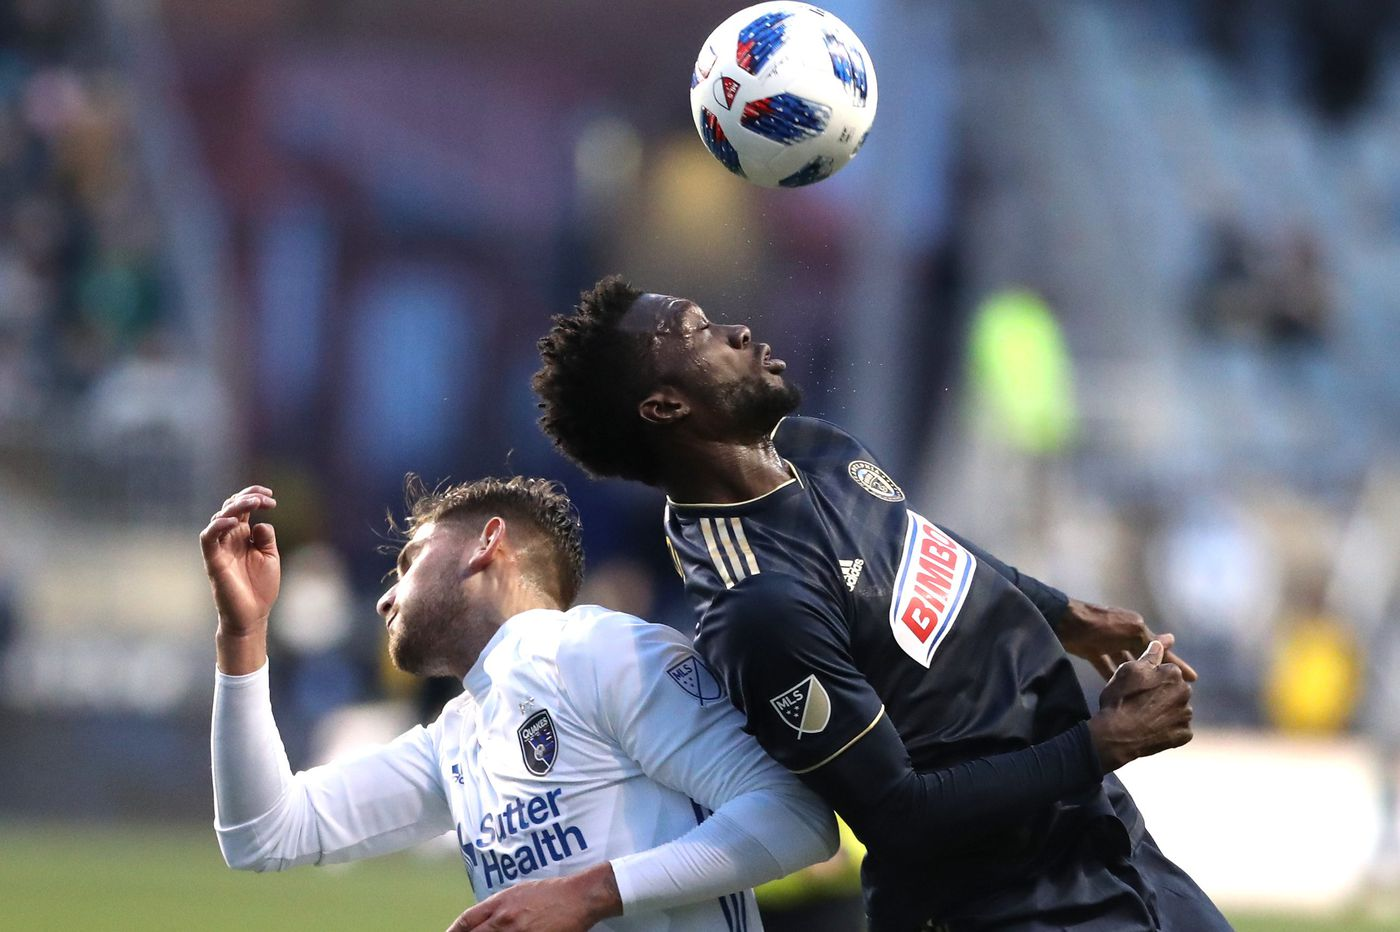 Union trade C.J. Sapong to Chicago Fire